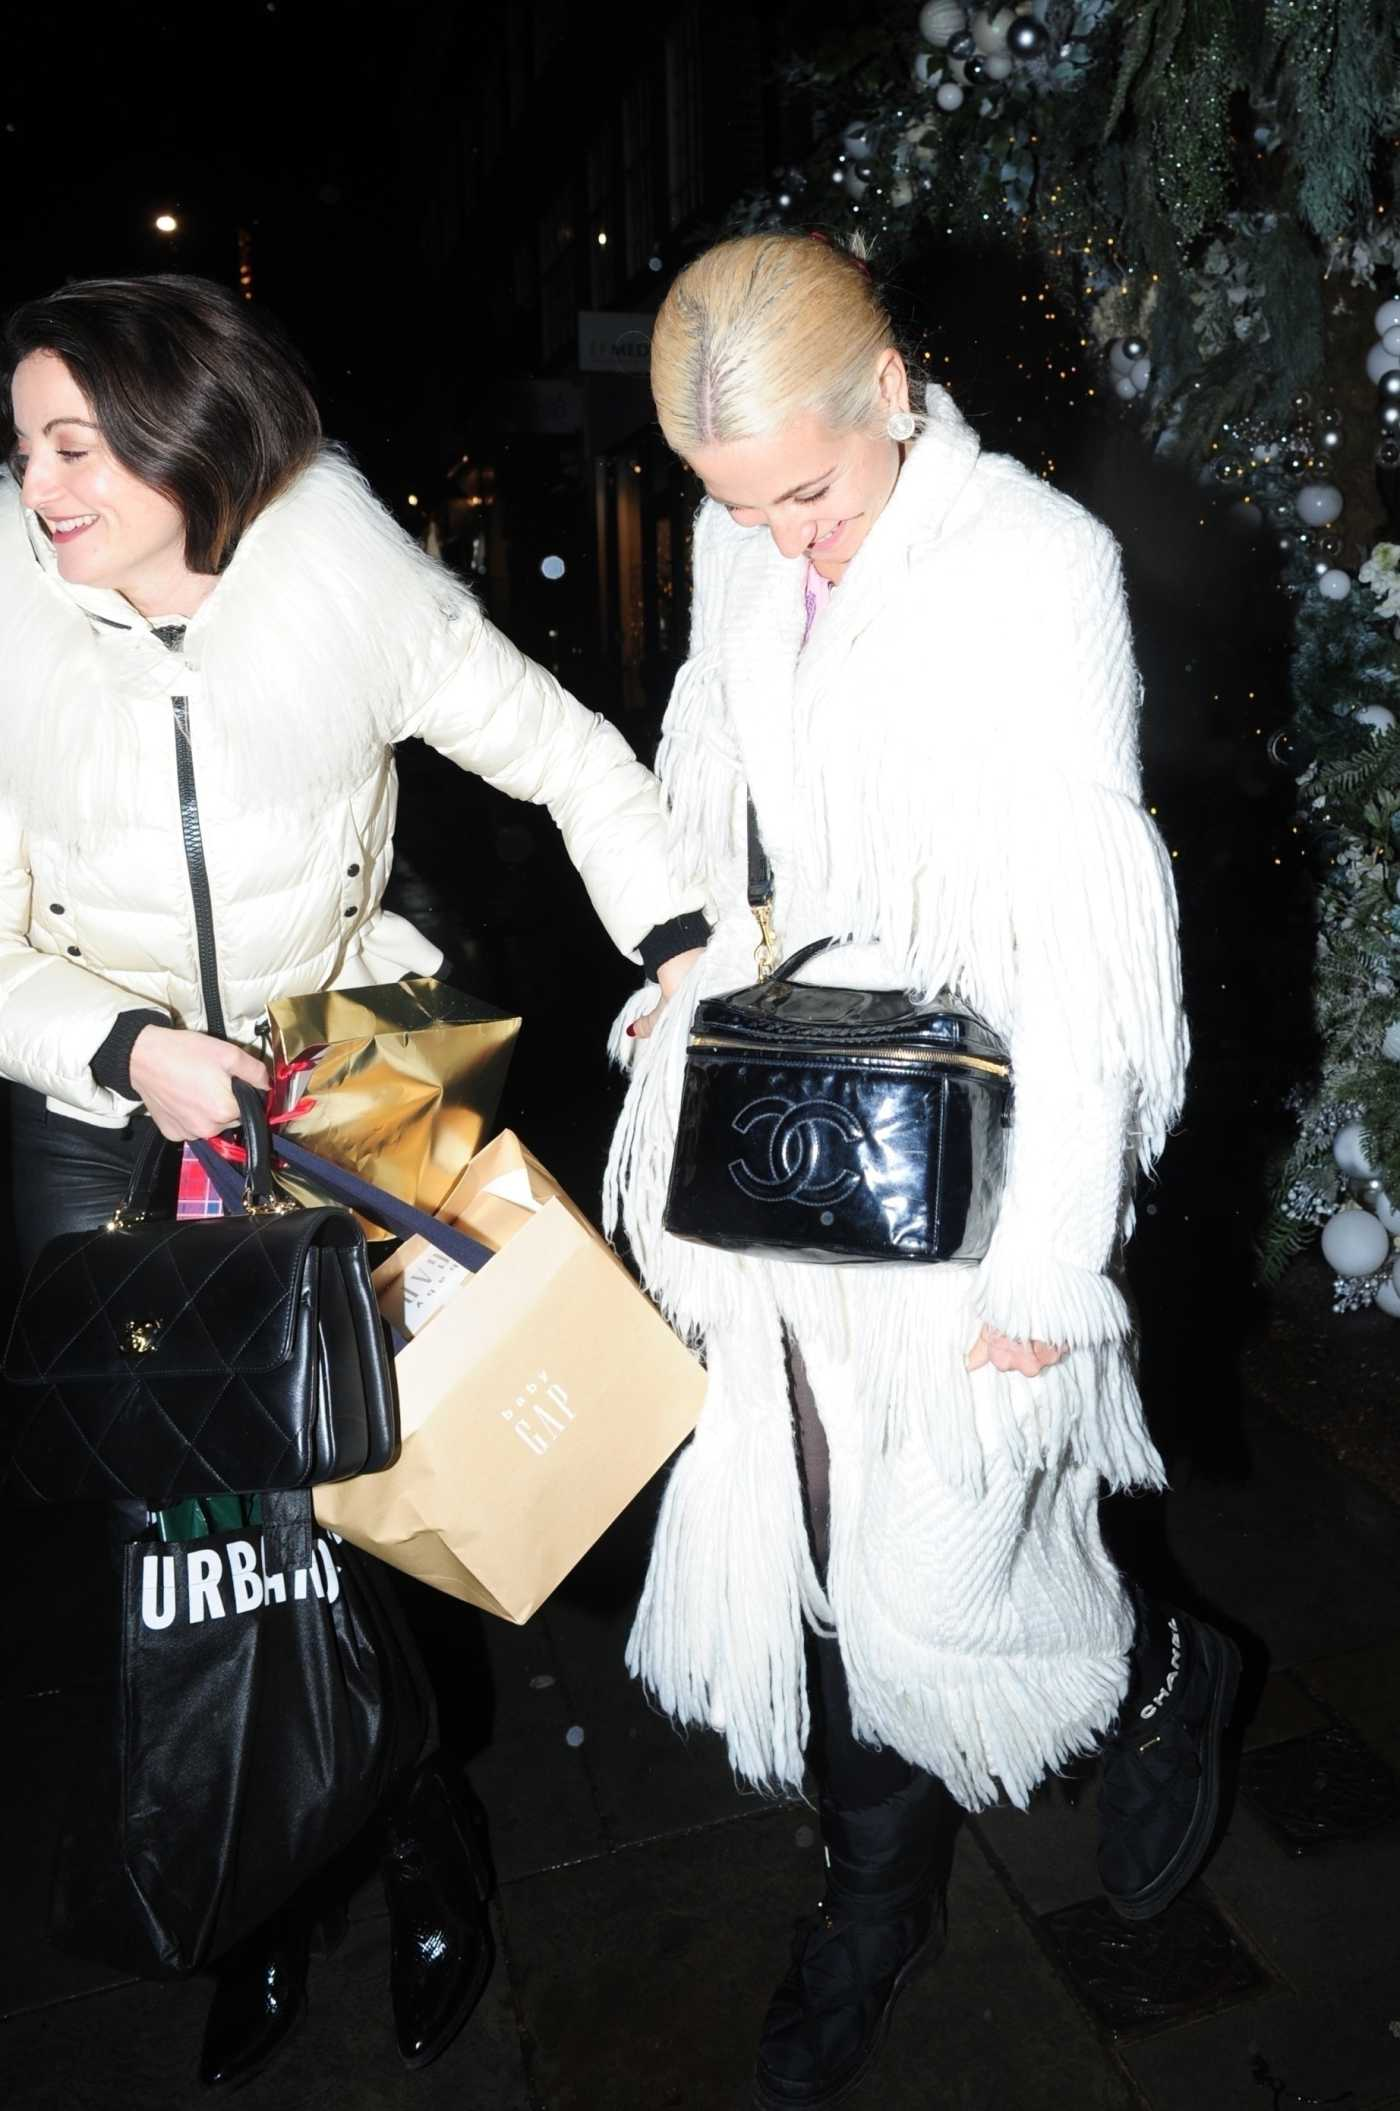 Pixie Lott in a White Coat Leaves the Ivy Chelsea Garden in London 12/22/2019